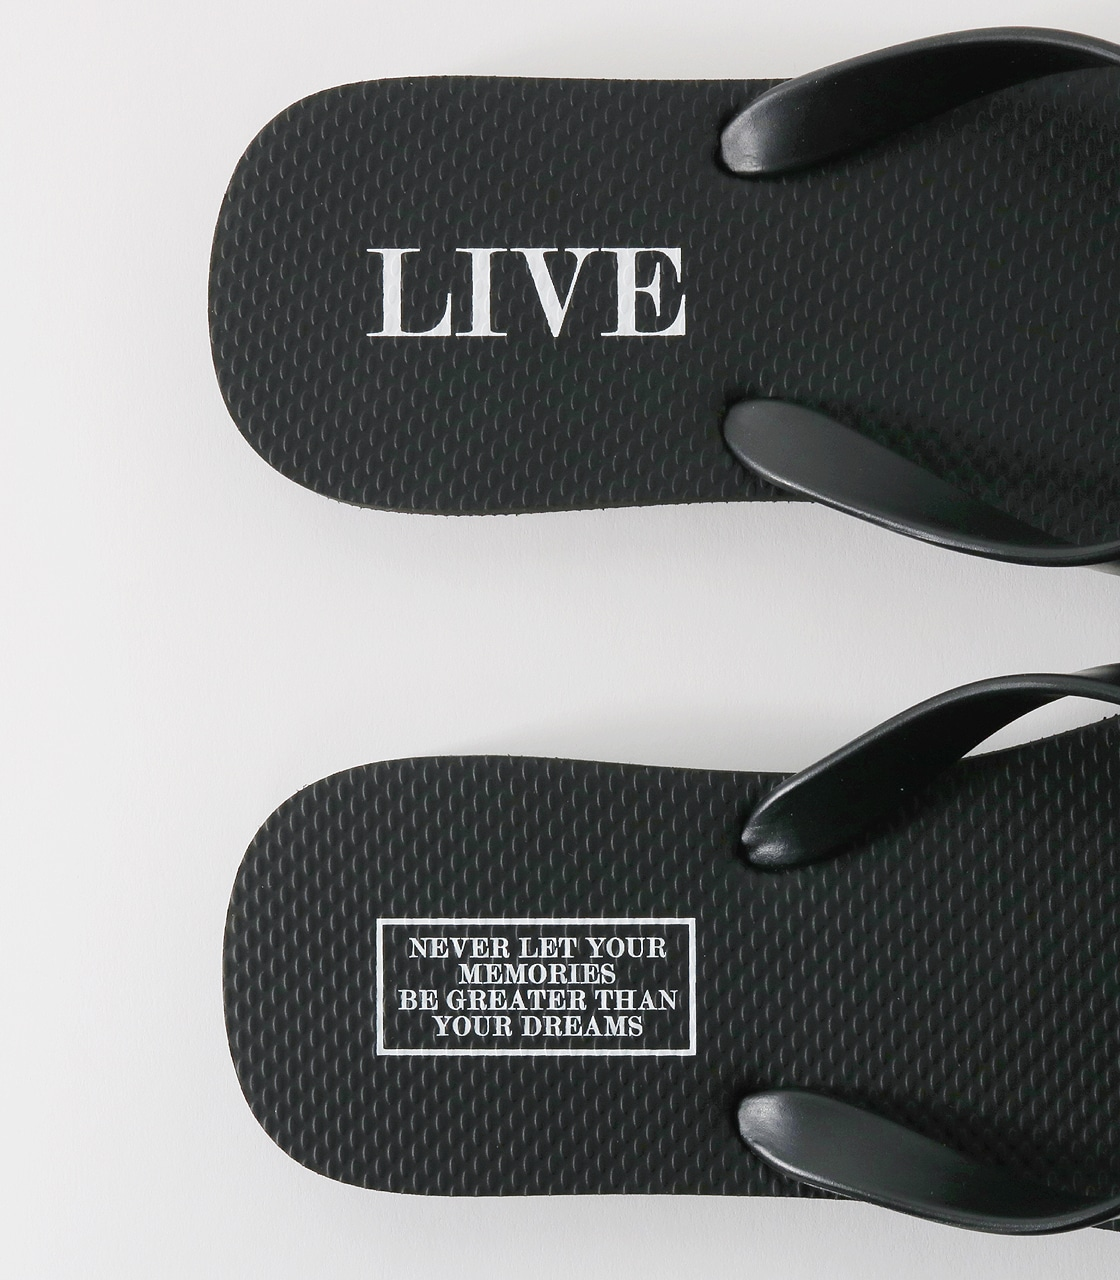 【AZUL BY MOUSSY】LIVE メッセージビーチサンダル 詳細画像 BLK 8